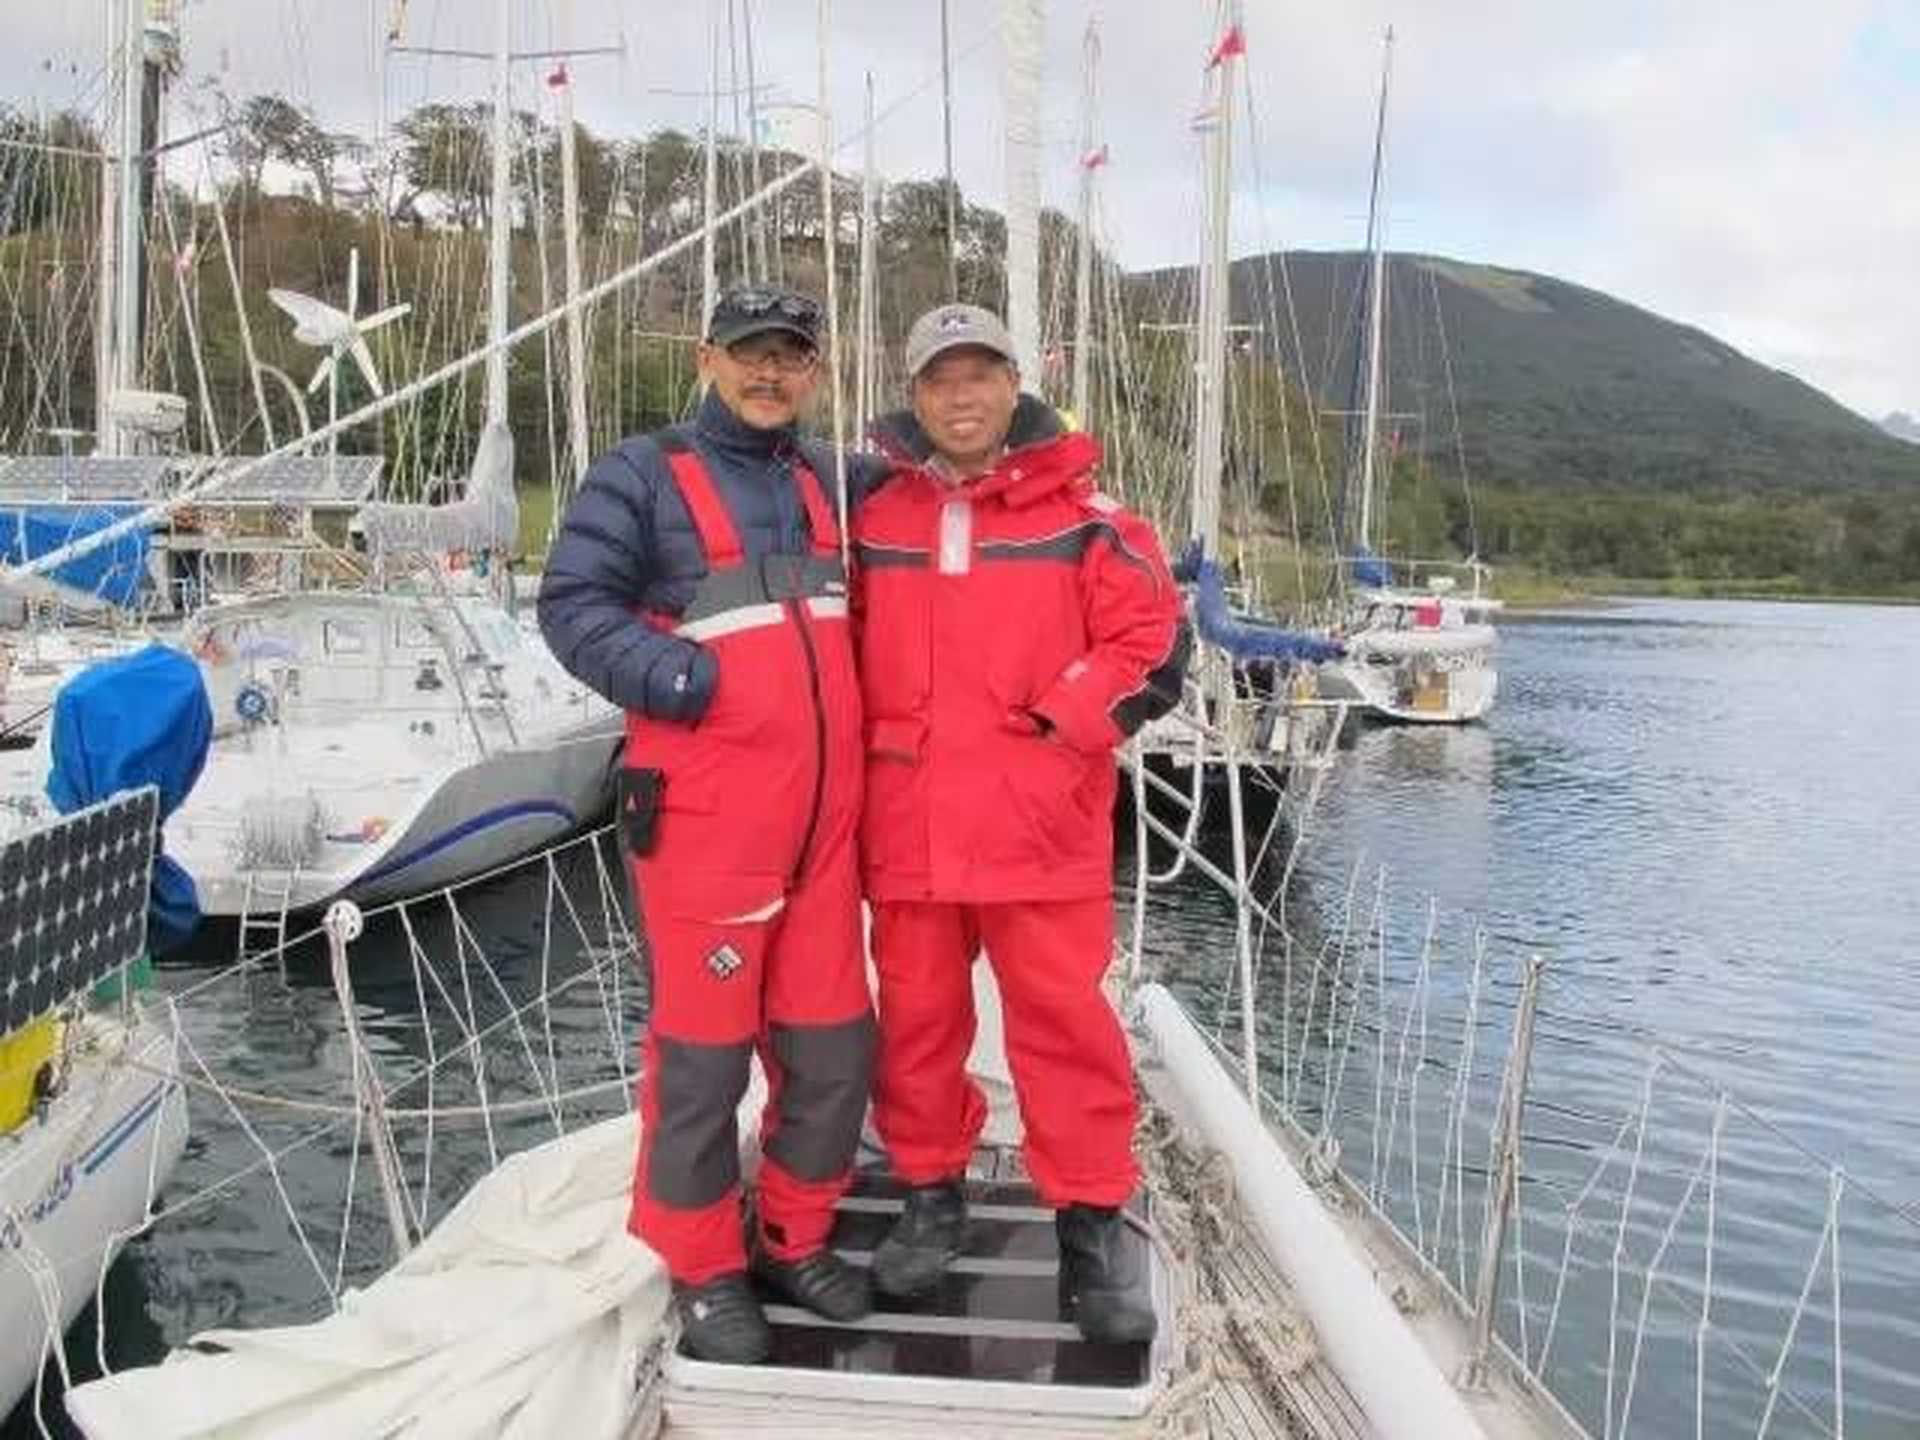 Iron: Sailing experts    Kua child a global sailing trip madman